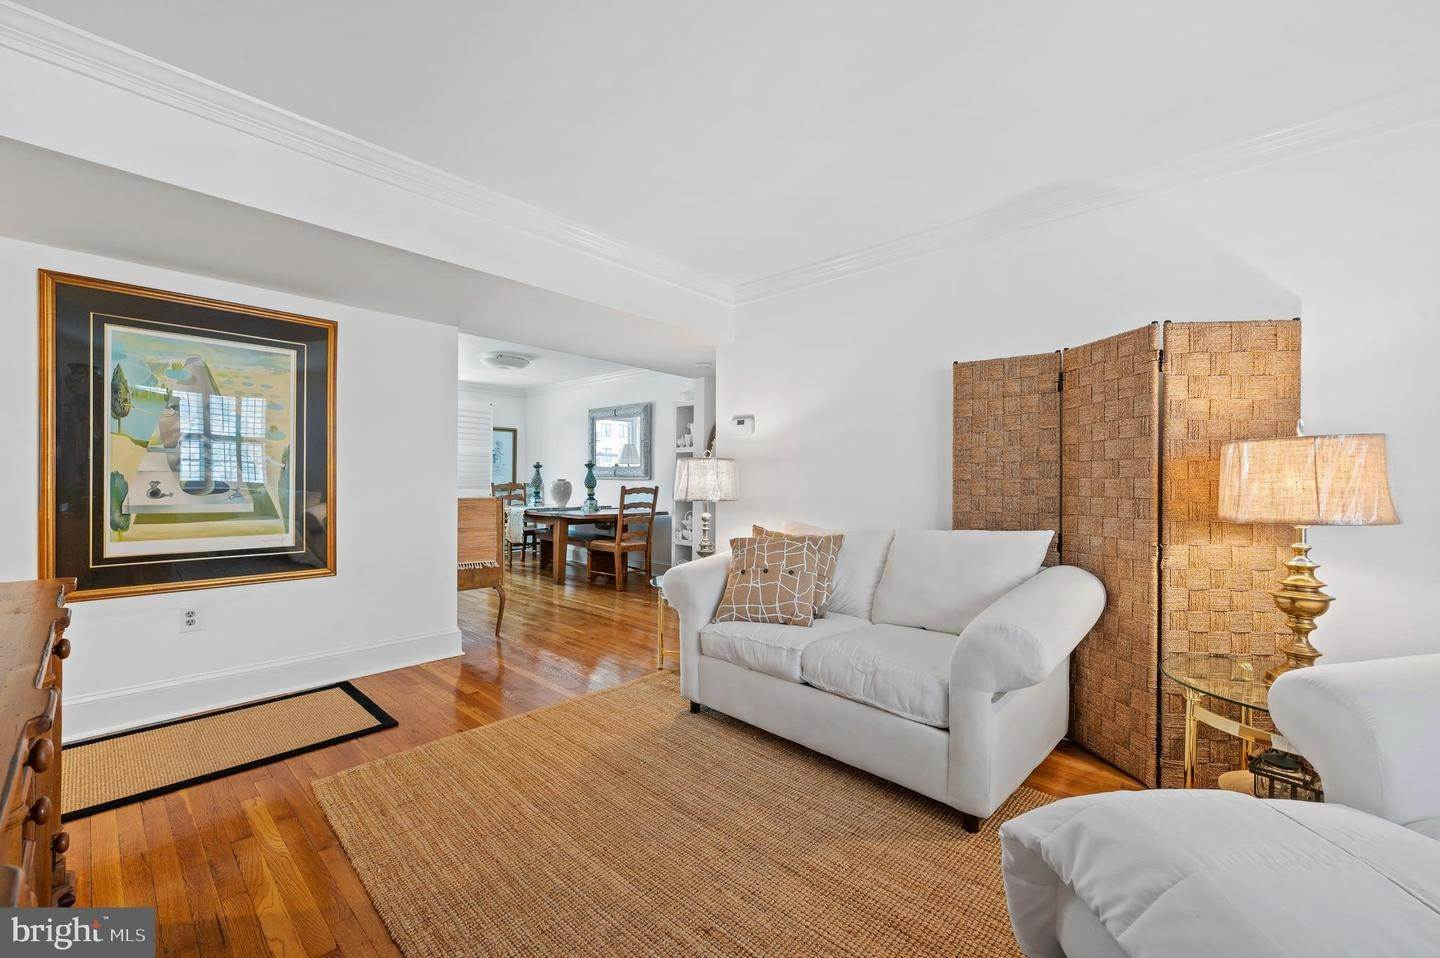 7. Condominiums for Sale at 42 CONSHOHOCKEN STATE RD #5F Bala Cynwyd, Pennsylvania 19004 United States